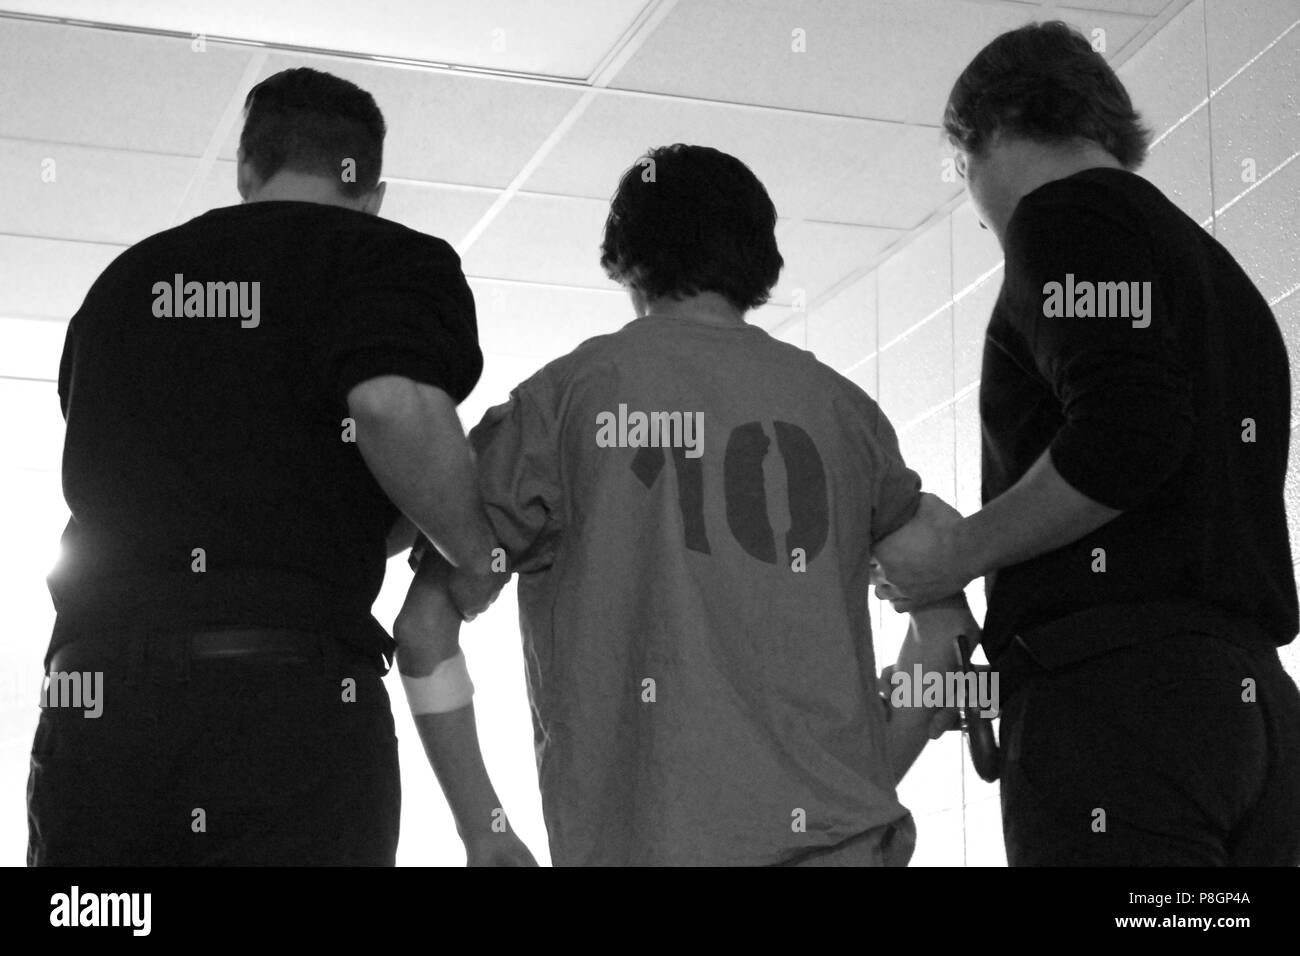 A prisoner in a jumpsuit with the number 10 is escorted by two guards. - Stock Image